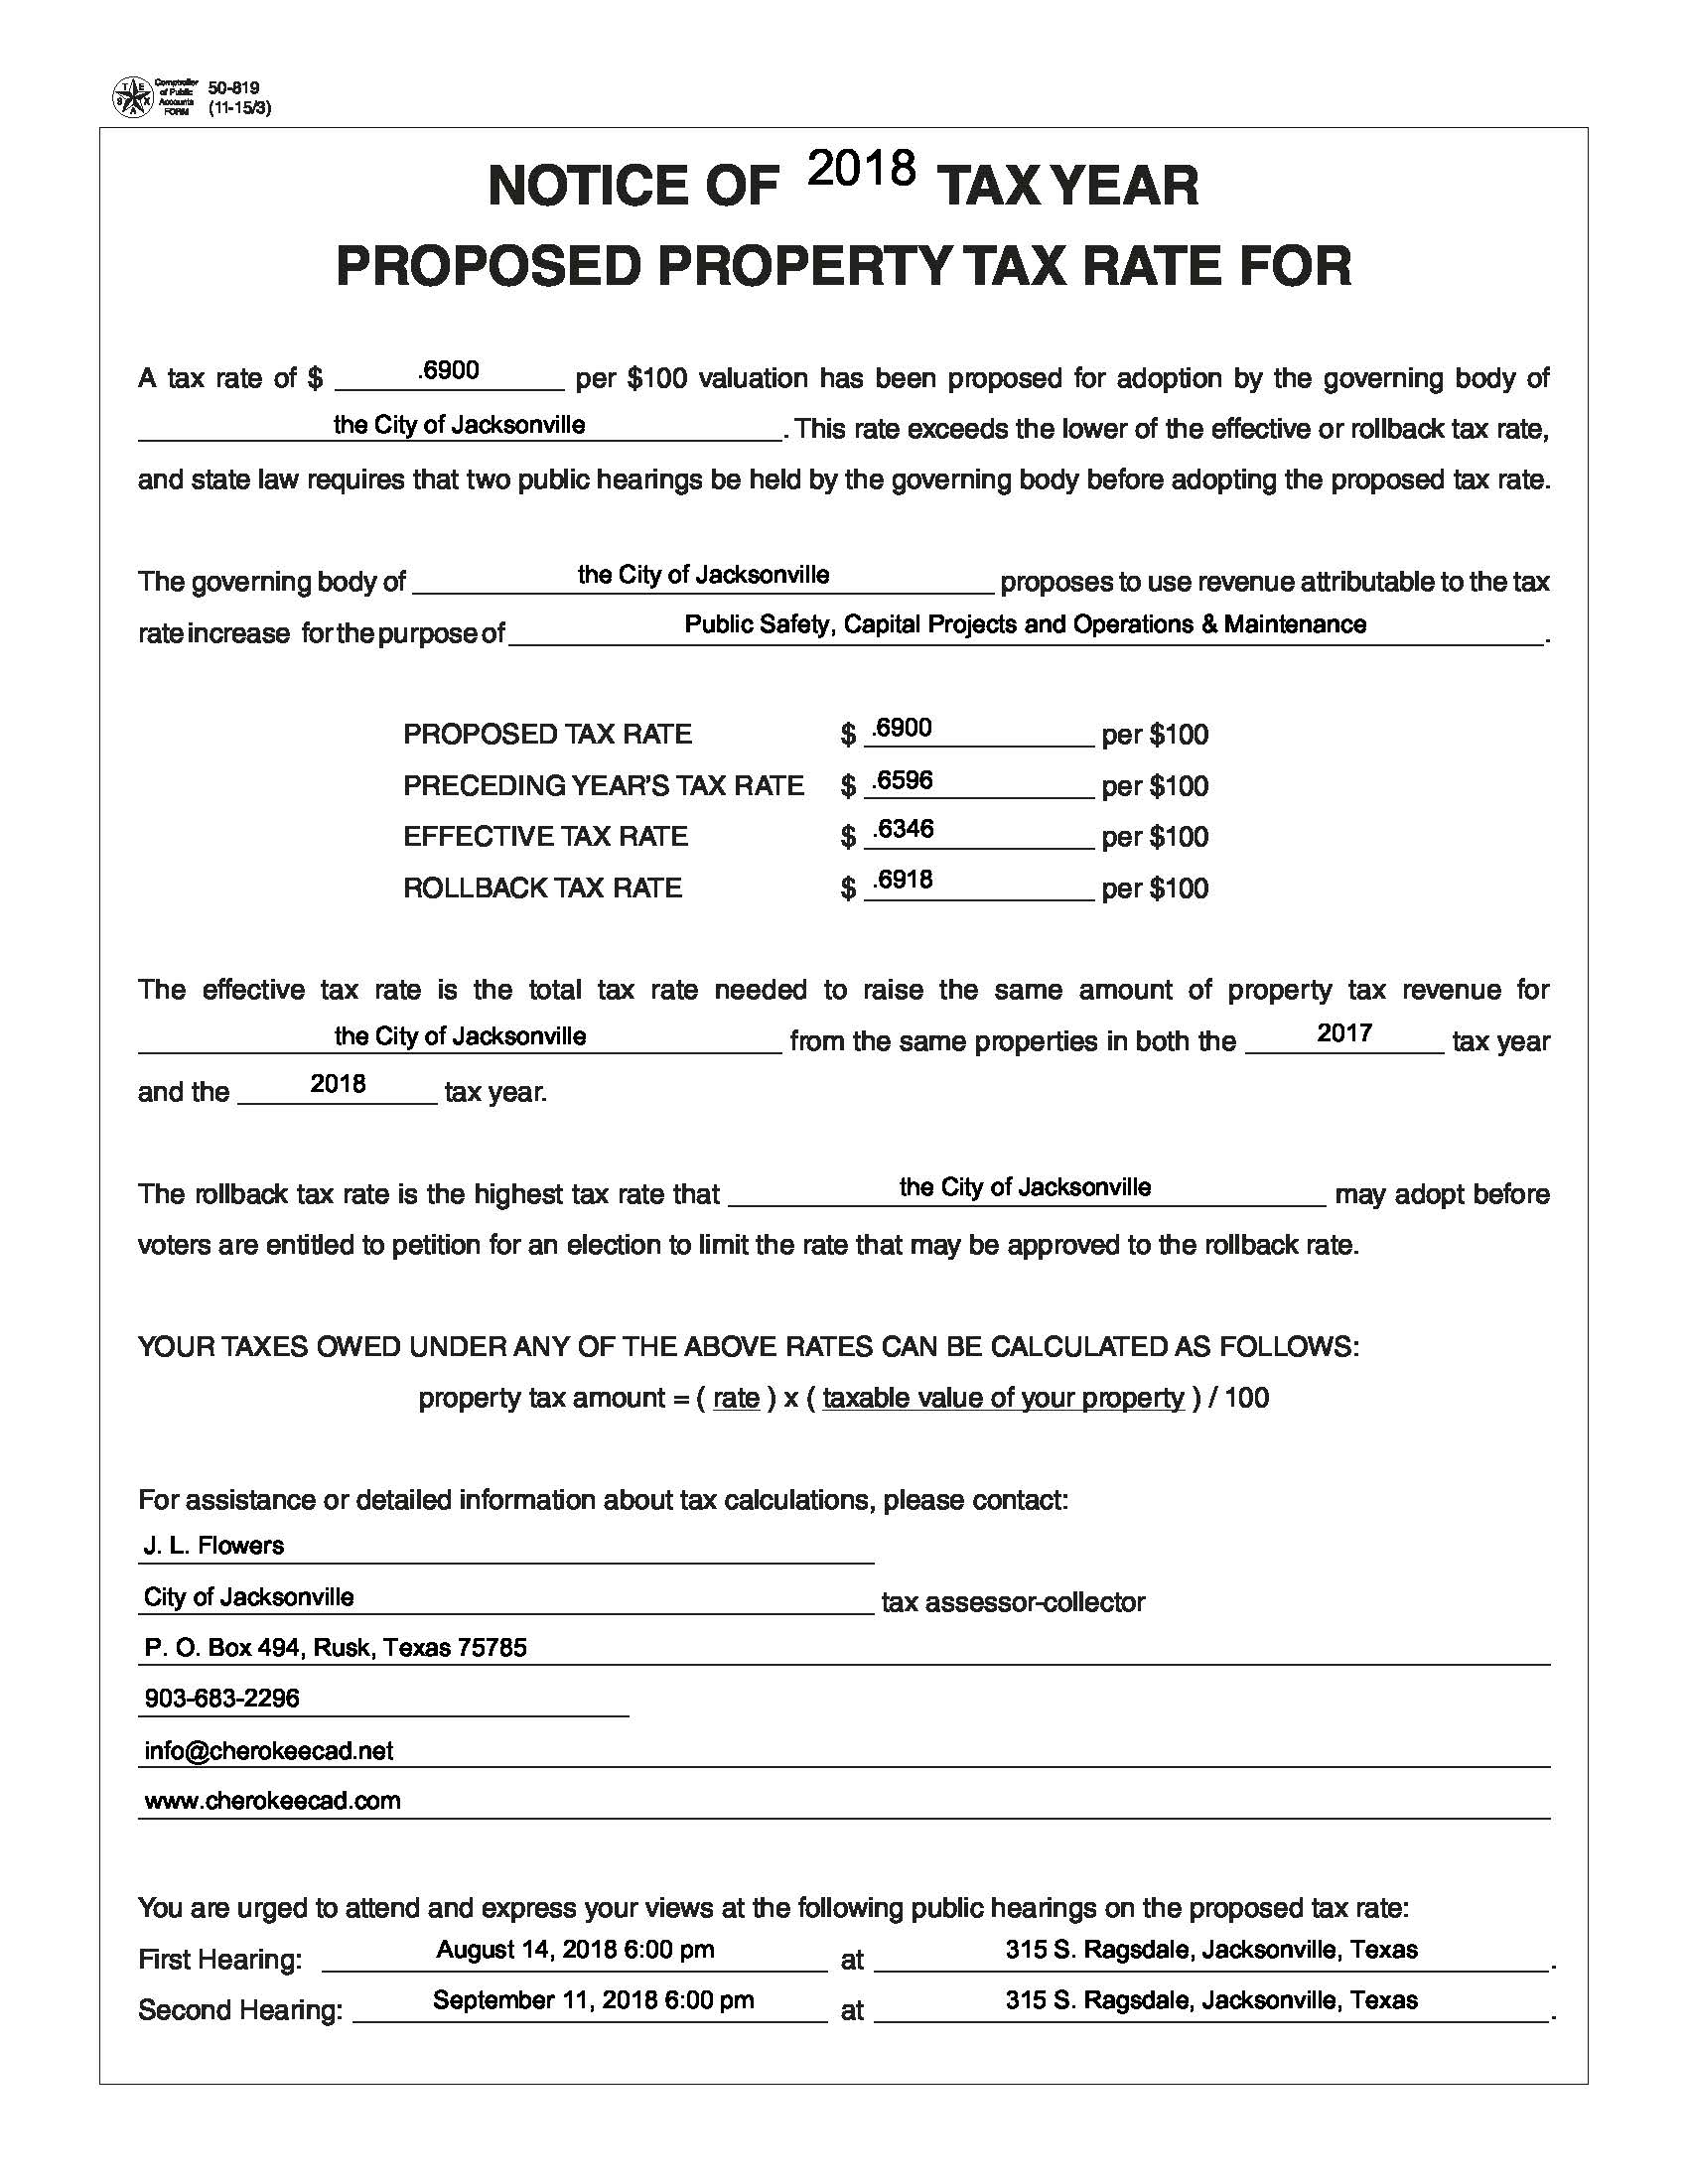 50-819 Rate Notice Form Jville Adv